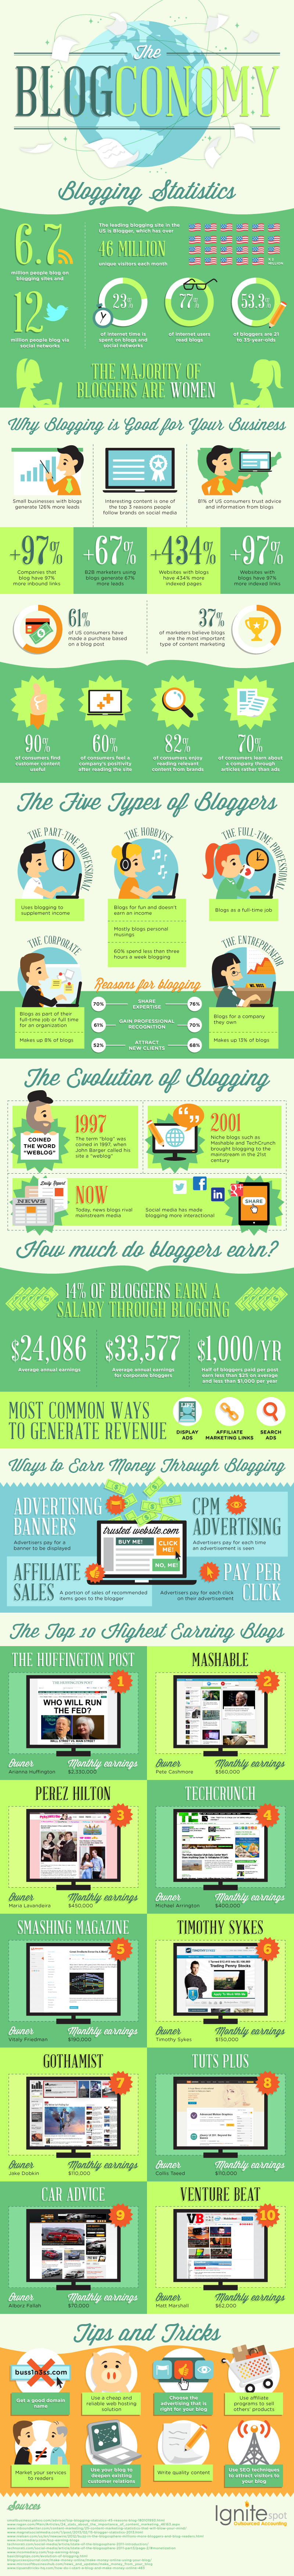 The #1 Small Business Marketing Idea [Infographic]